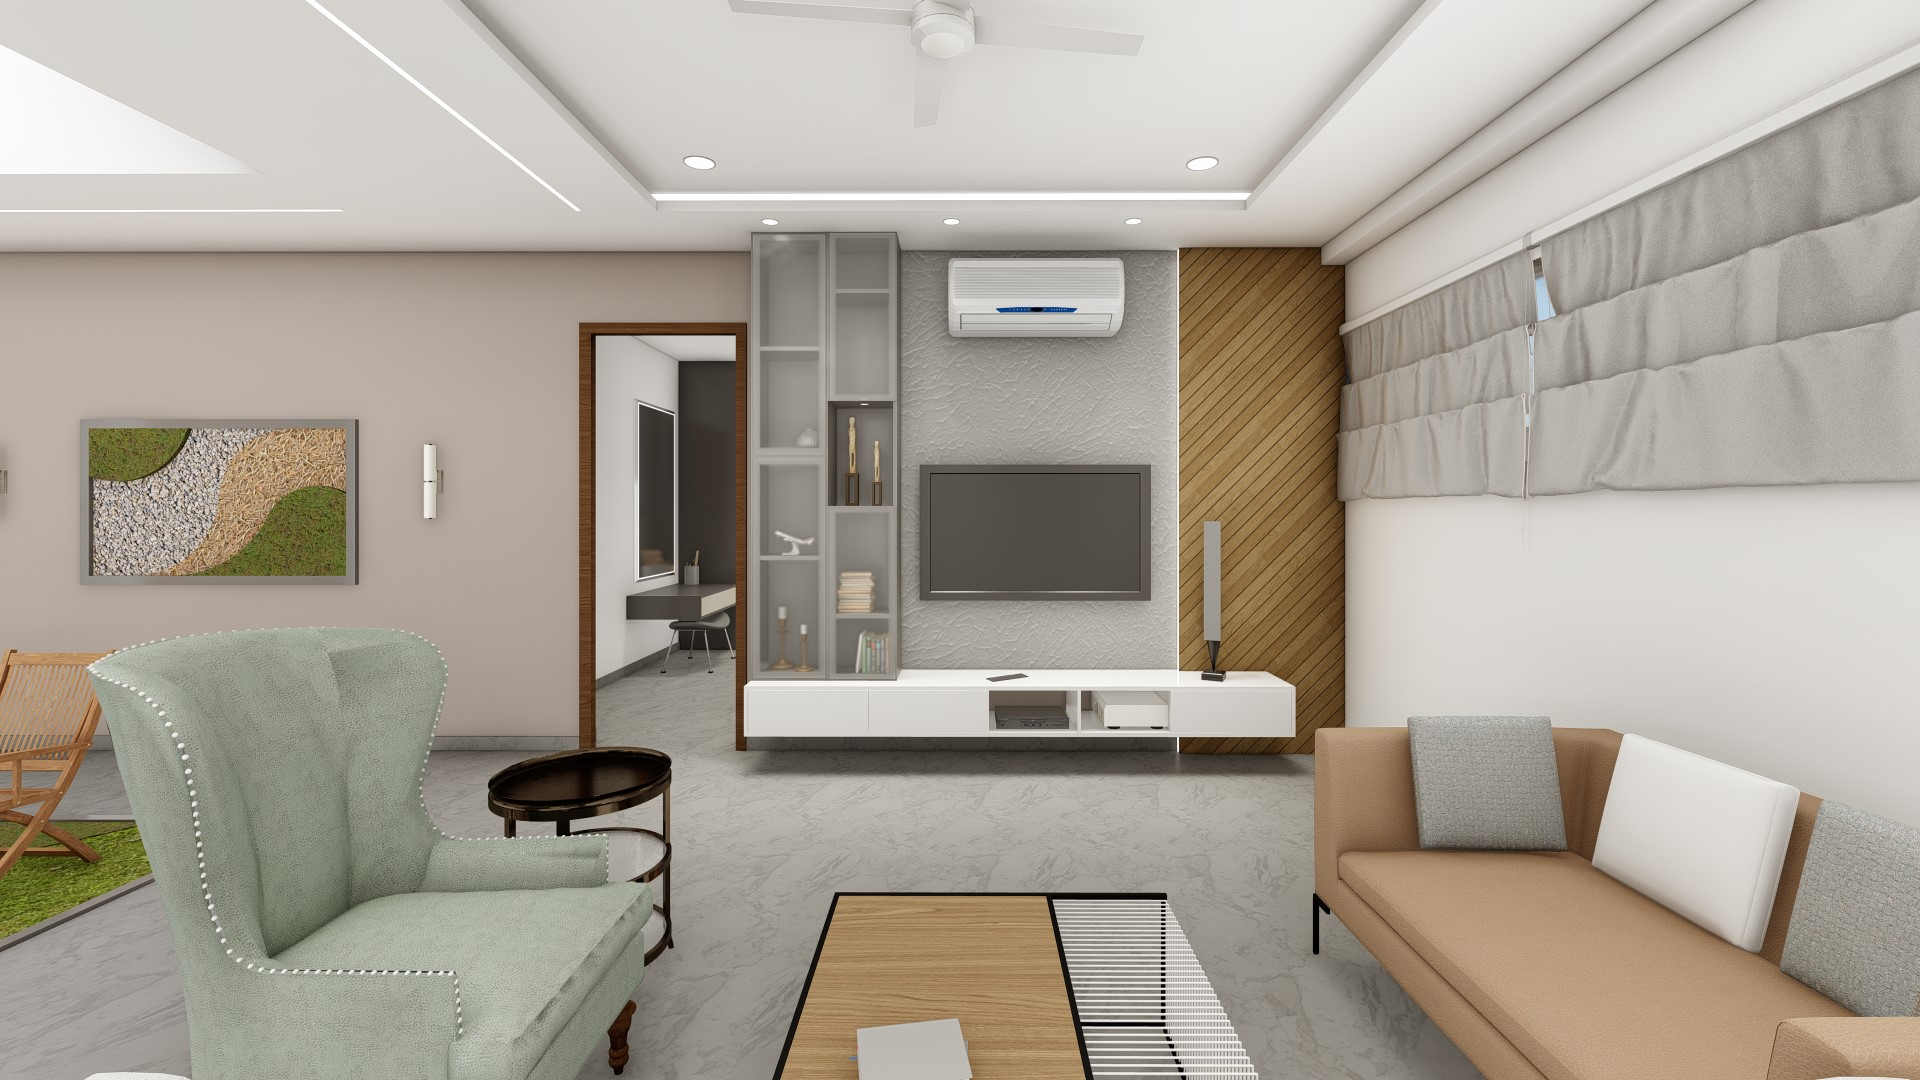 Importance Of Interior Designers At Office And Other Work Places